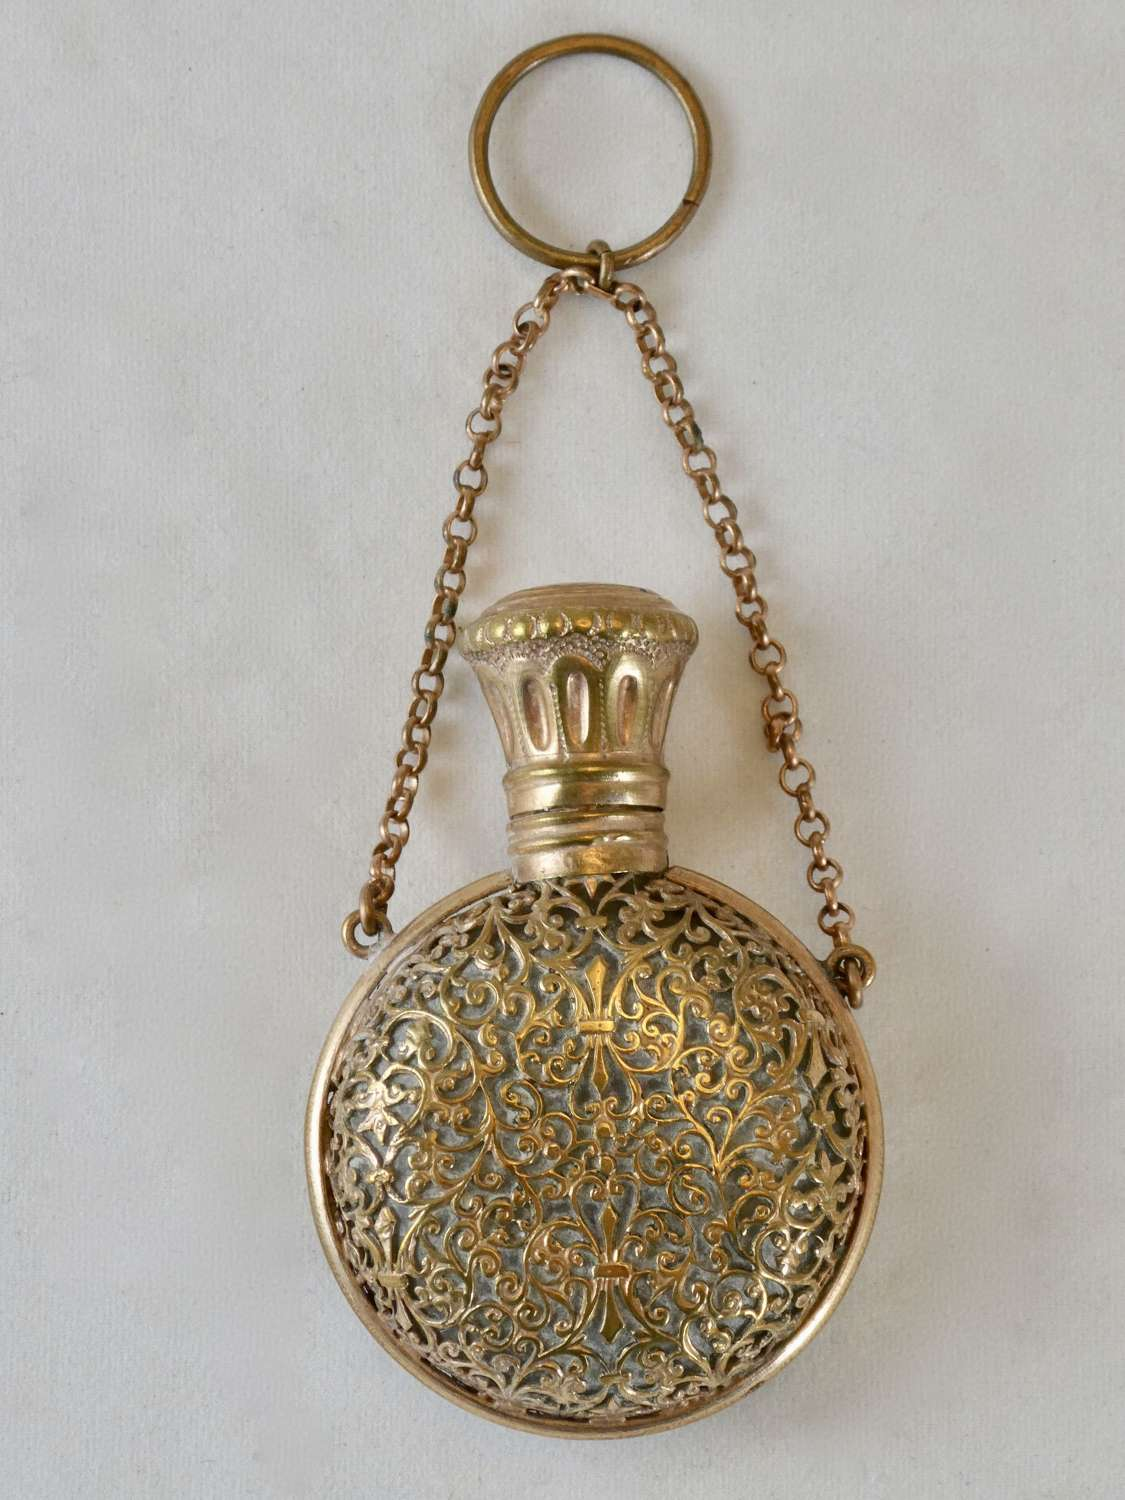 19th Century Glass and Gilt Metal Scent Bottle